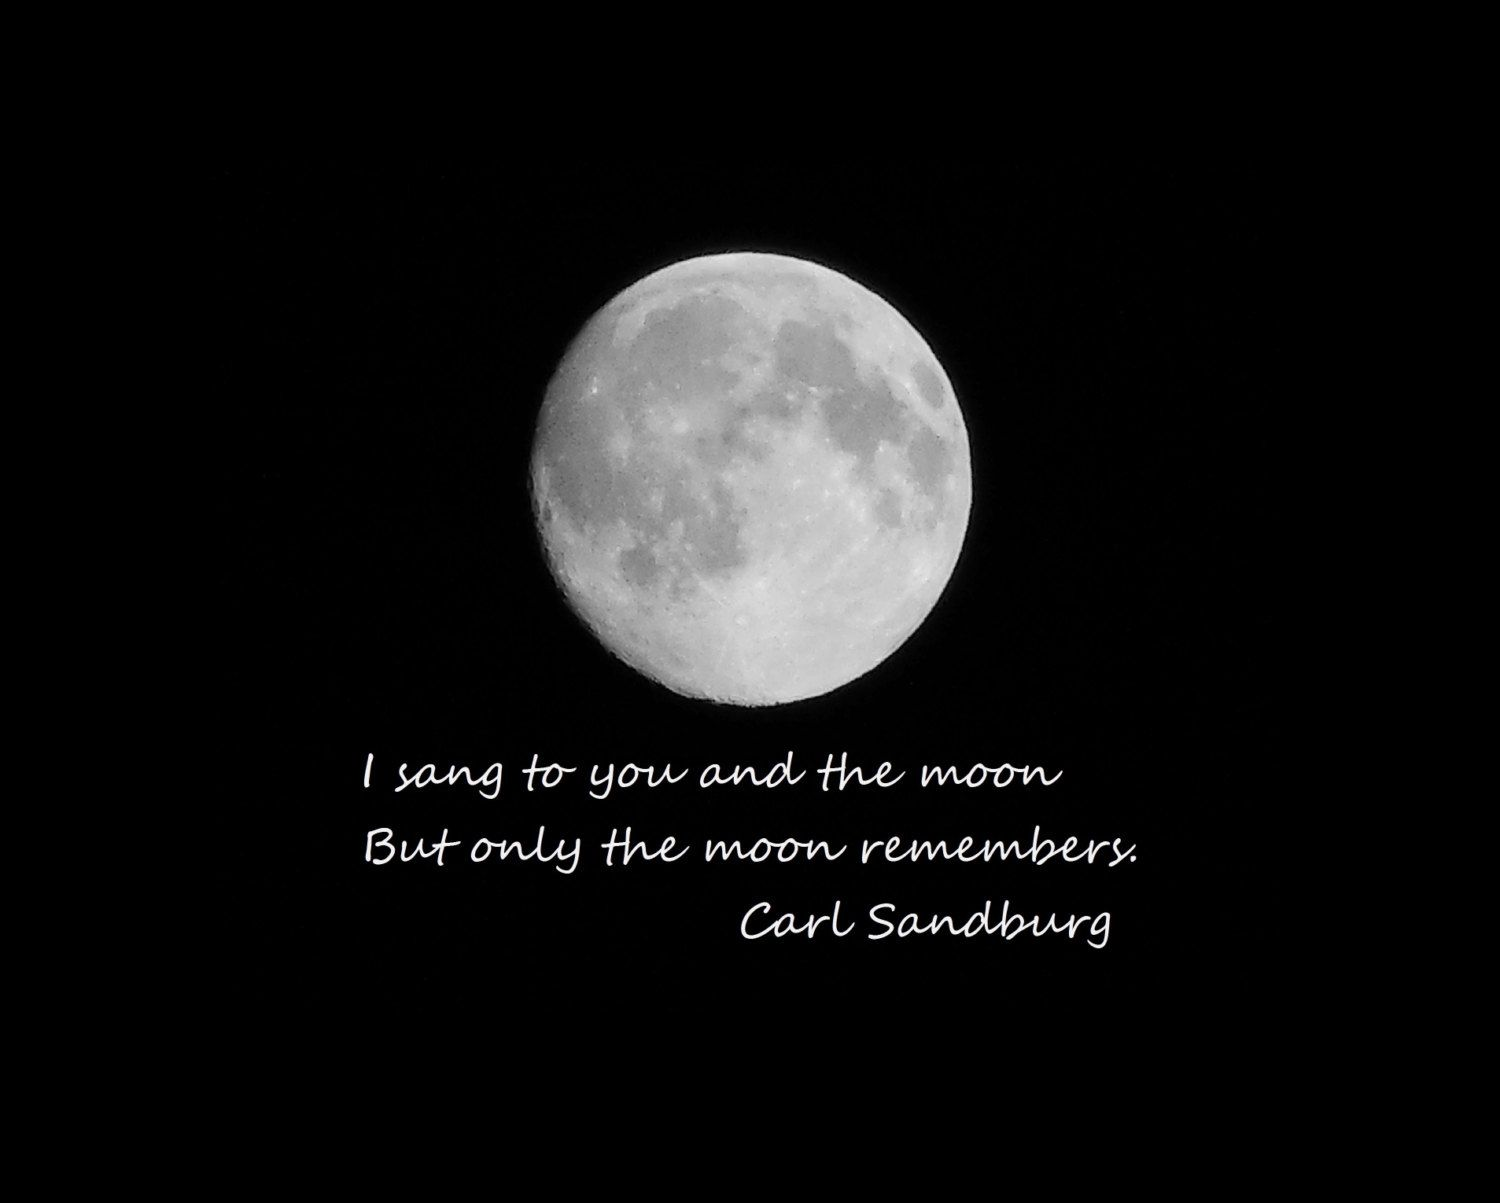 Sandburg Moon Fine Art Print Moon Photography Moon Decor Etsy In 2021 Moon Quotes Full Moon Quotes Quotes About Photography